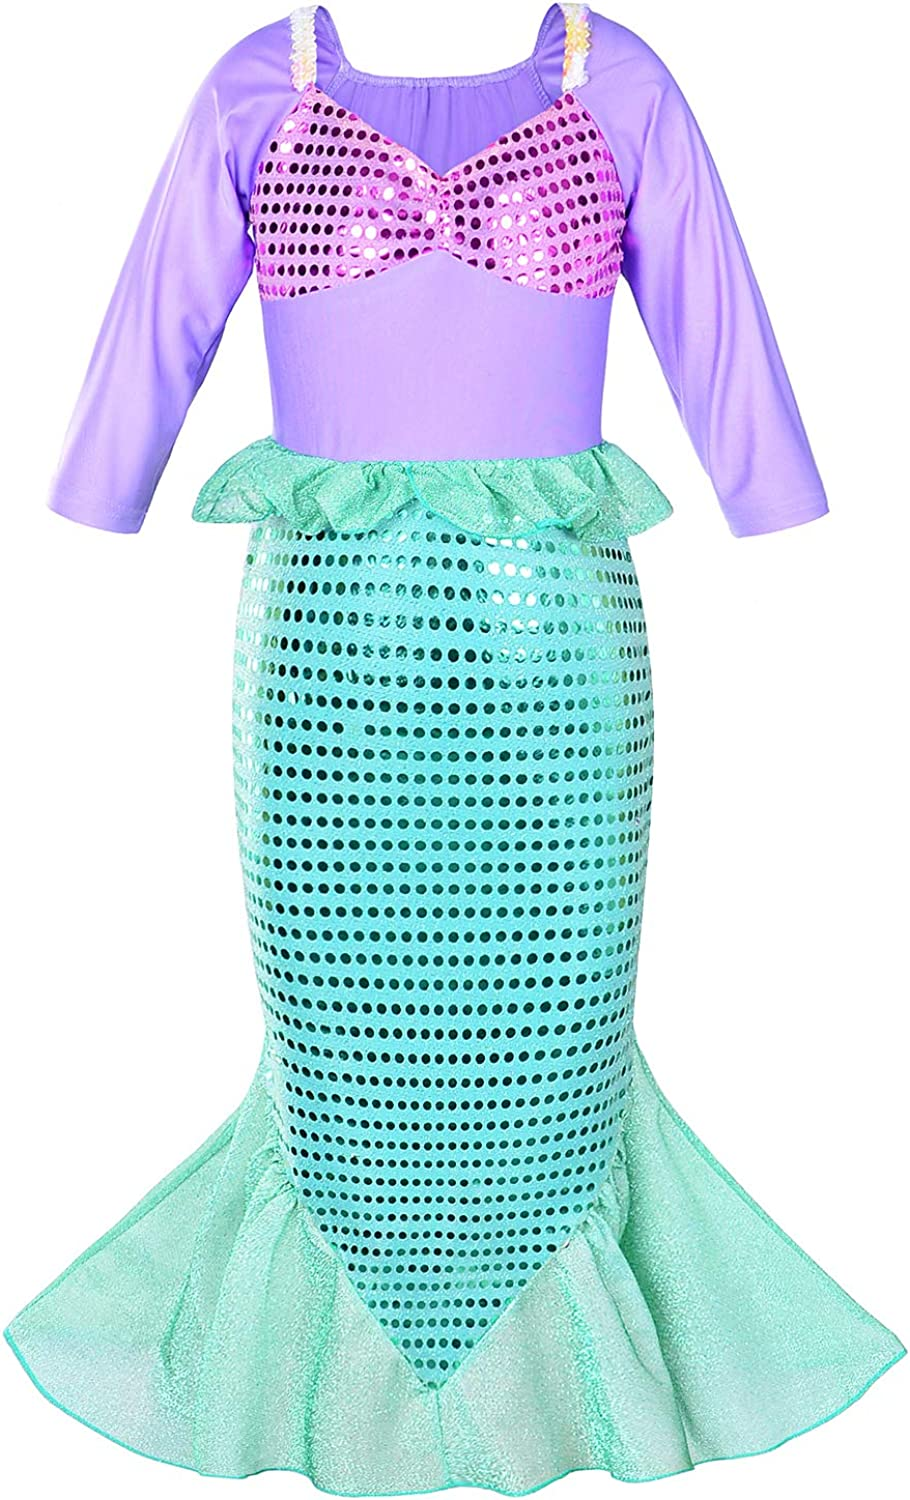 Party Chili Little Girls Mermaid Costume Princess Dress Up for Birthday with Accessories Crown+Wand 3-10 Years